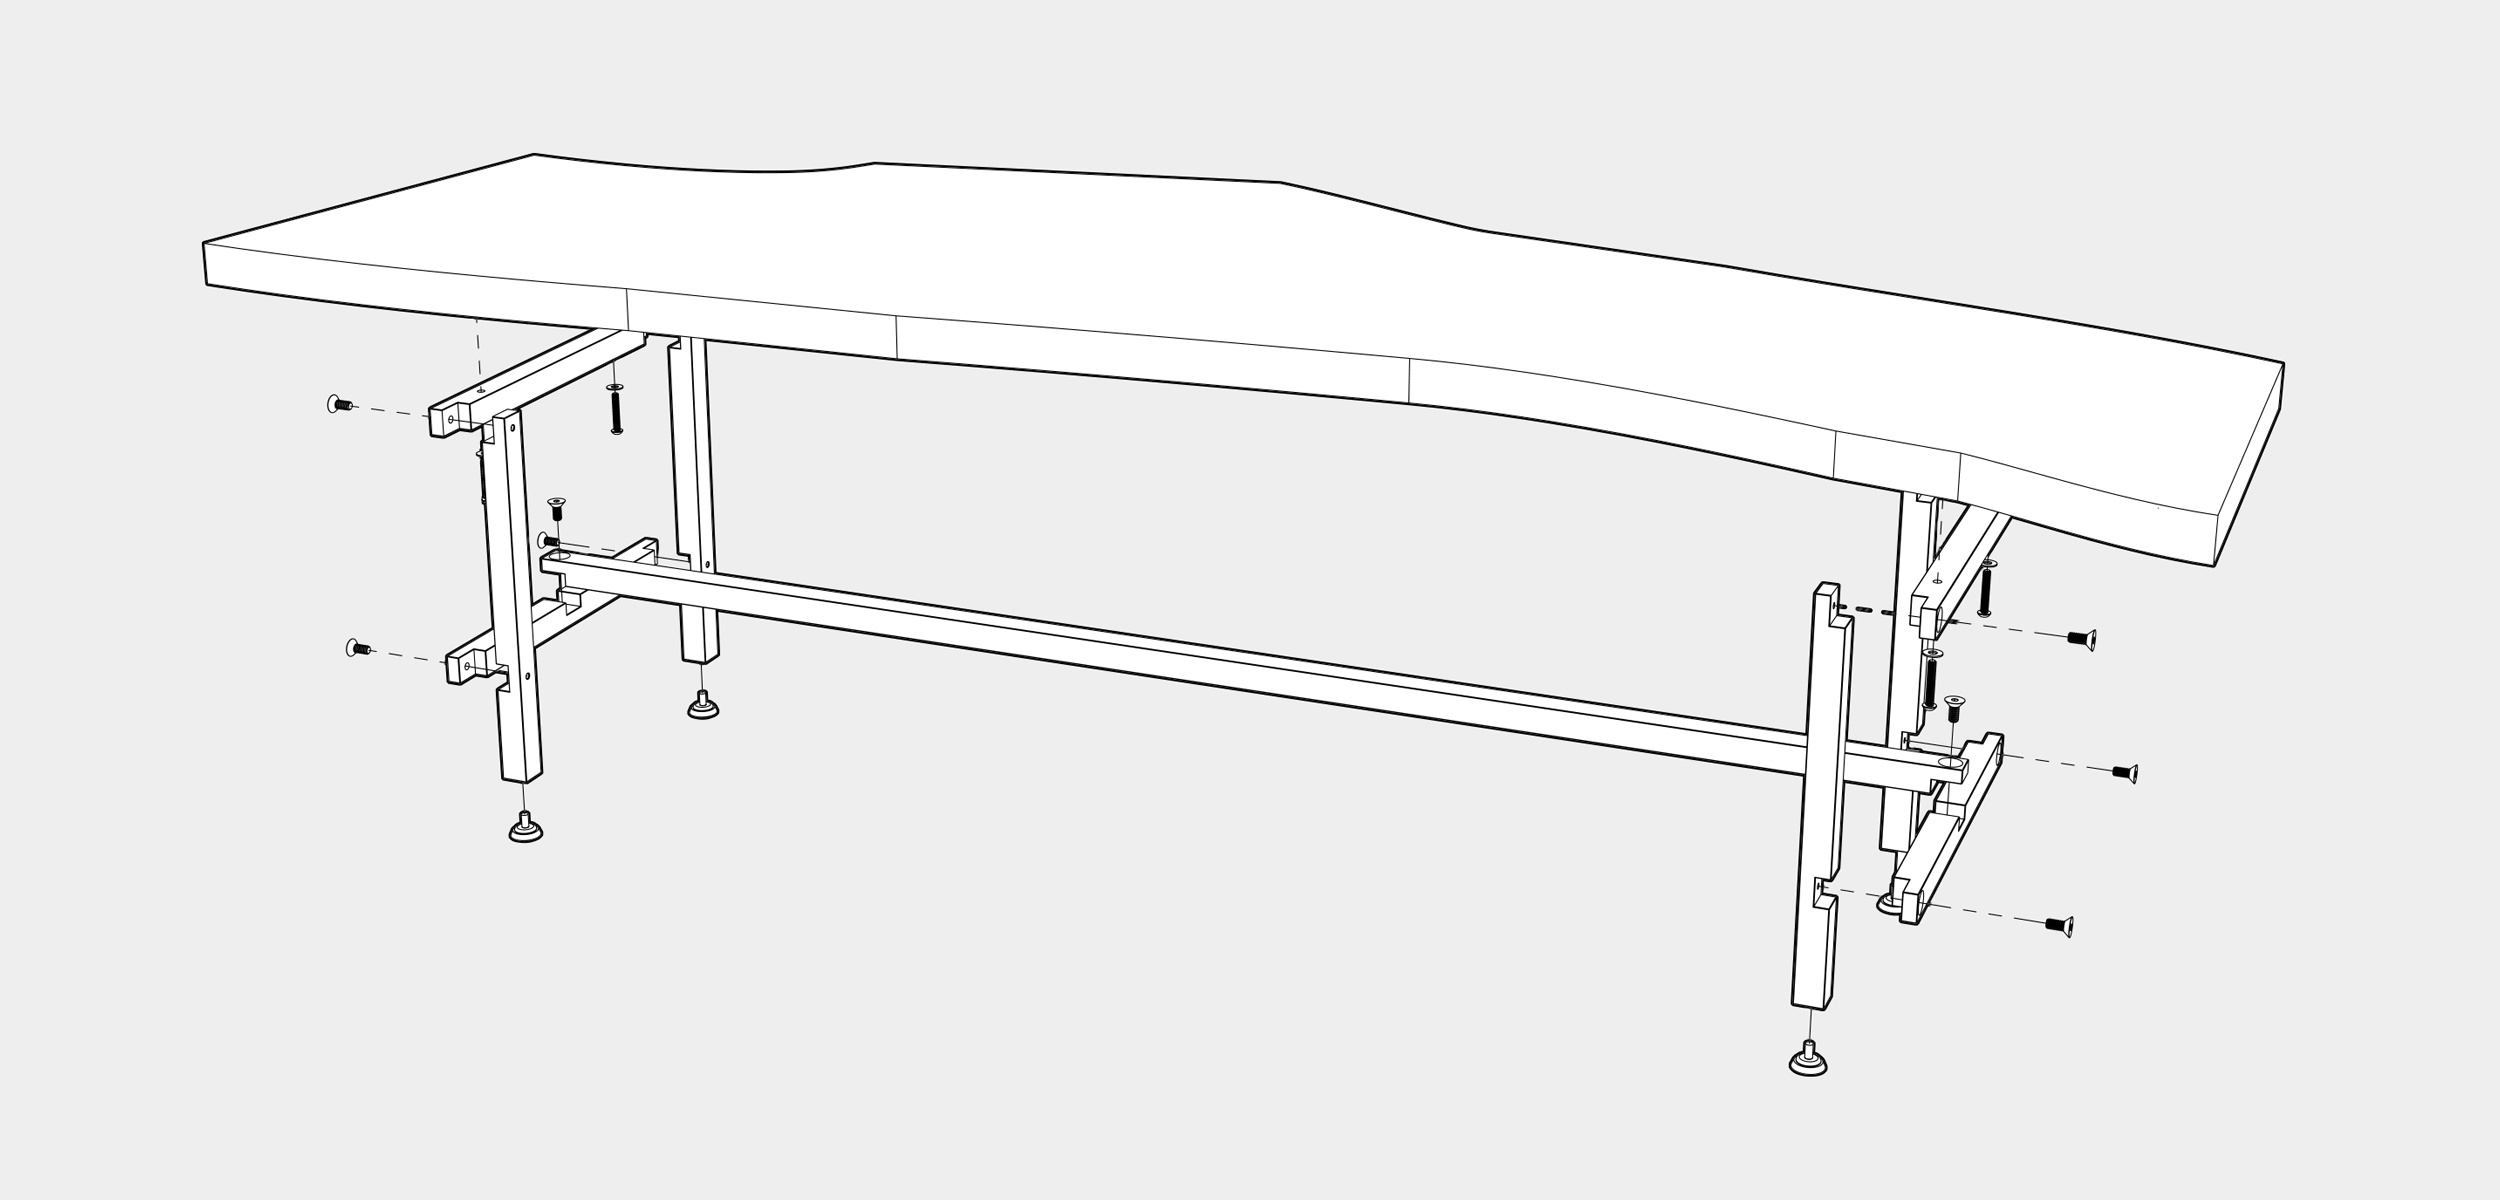 H TABLE CONSTRUCTION